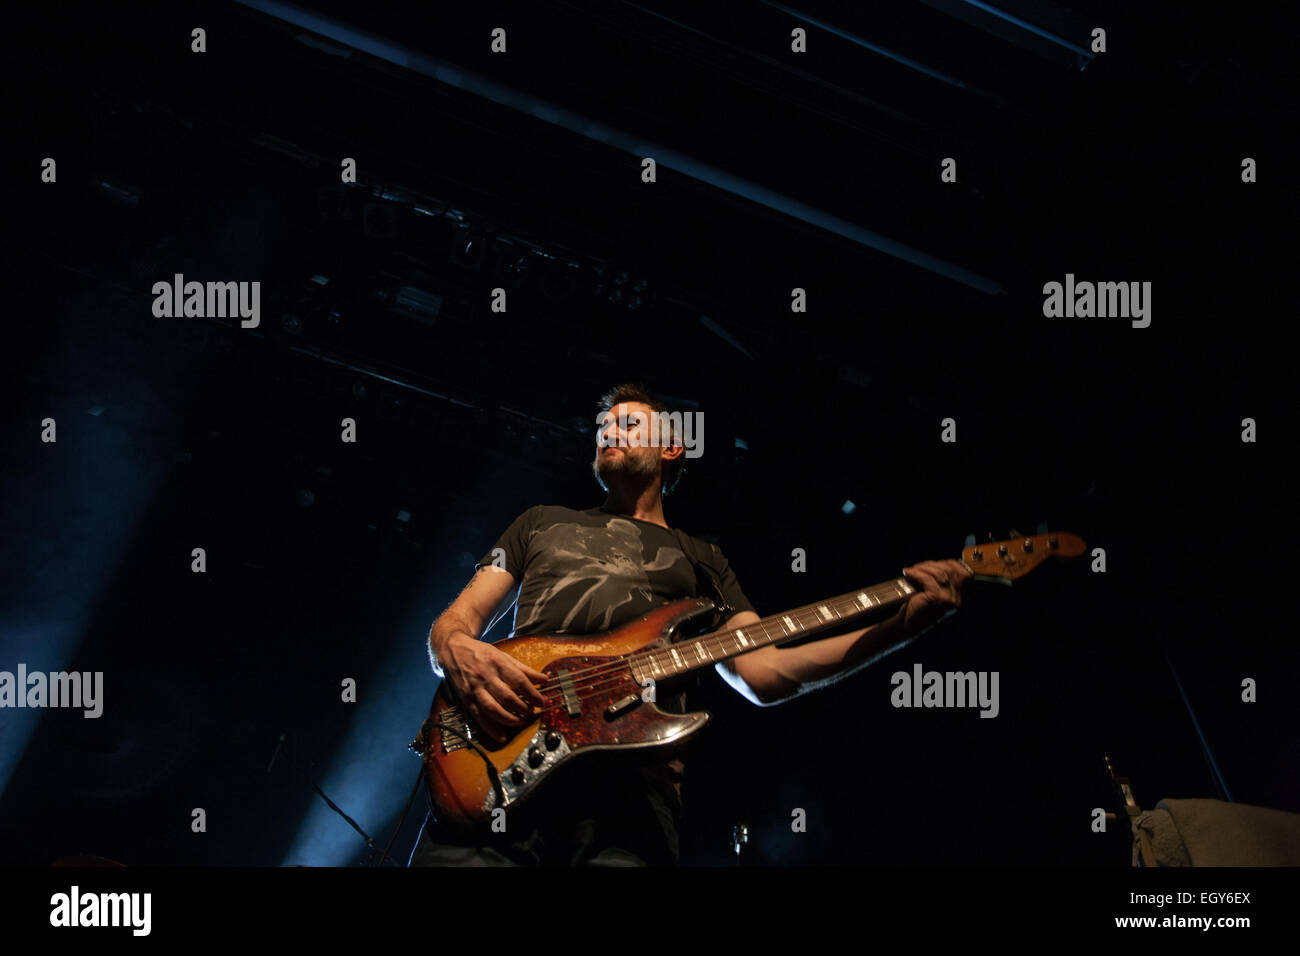 Ljubljana, Slovenia. 3rd March, 2015. UK electronic band Lamb (Lou Rhodes and  Andy Barlow) preforming on stage - Stock Image